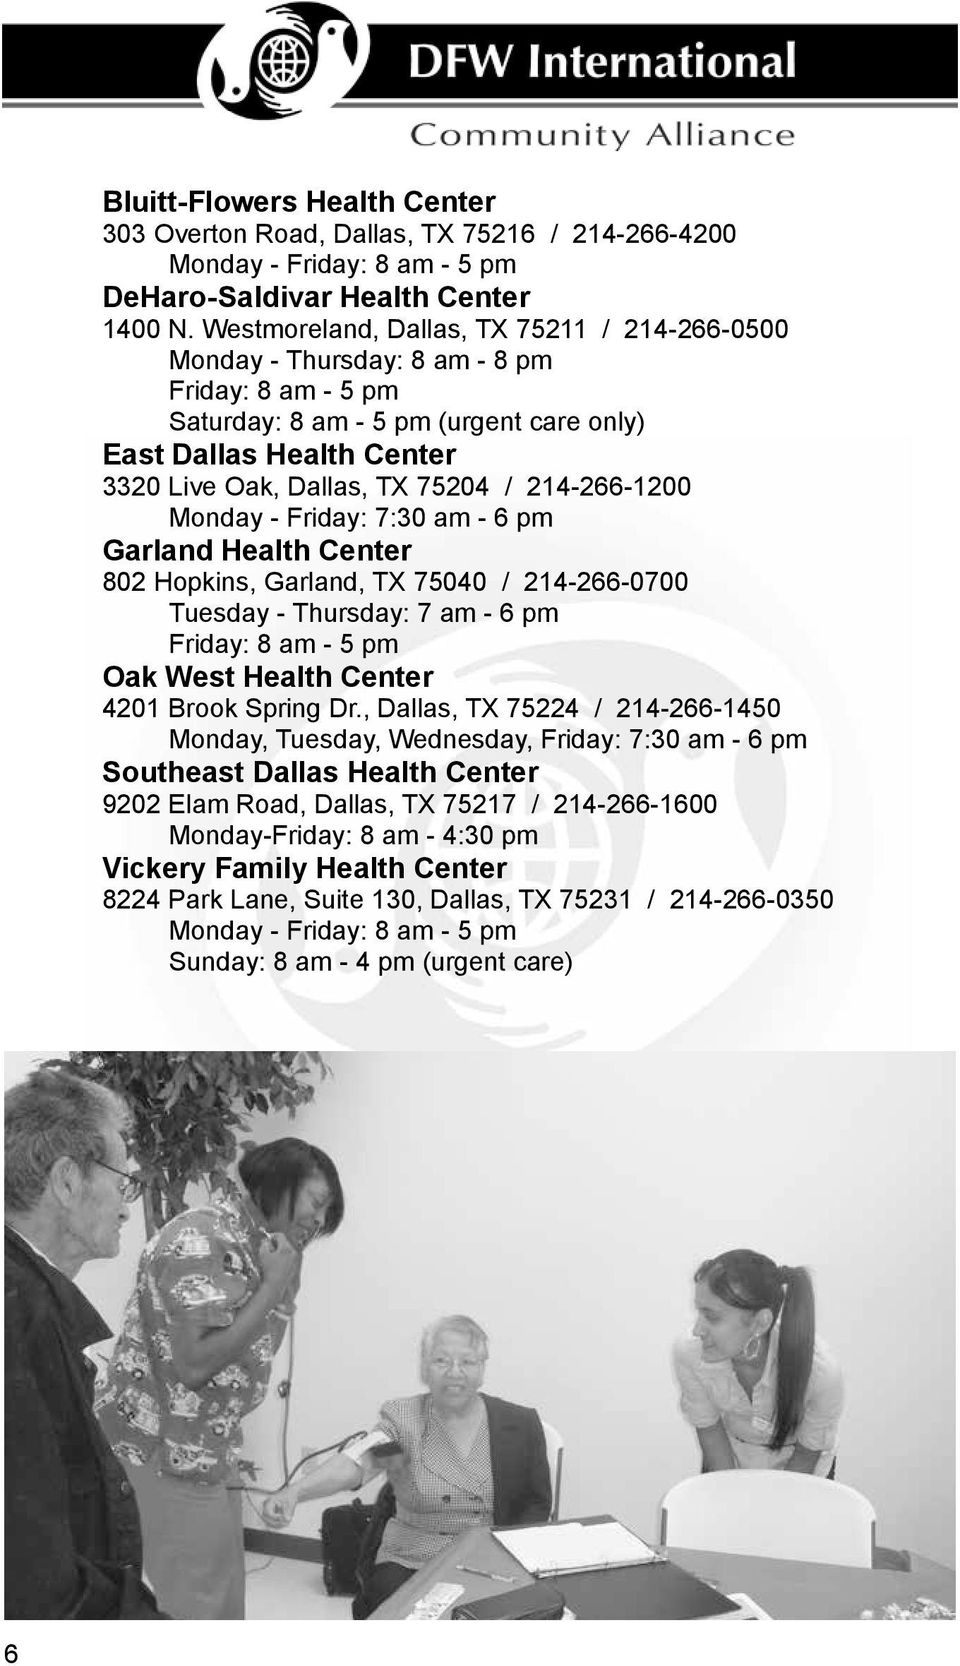 214-266-1200 Monday - Friday: 7:30 am - 6 pm Garland Health Center 802 Hopkins, Garland, TX 75040 / 214-266-0700 Tuesday - Thursday: 7 am - 6 pm Friday: 8 am - 5 pm Oak West Health Center 4201 Brook